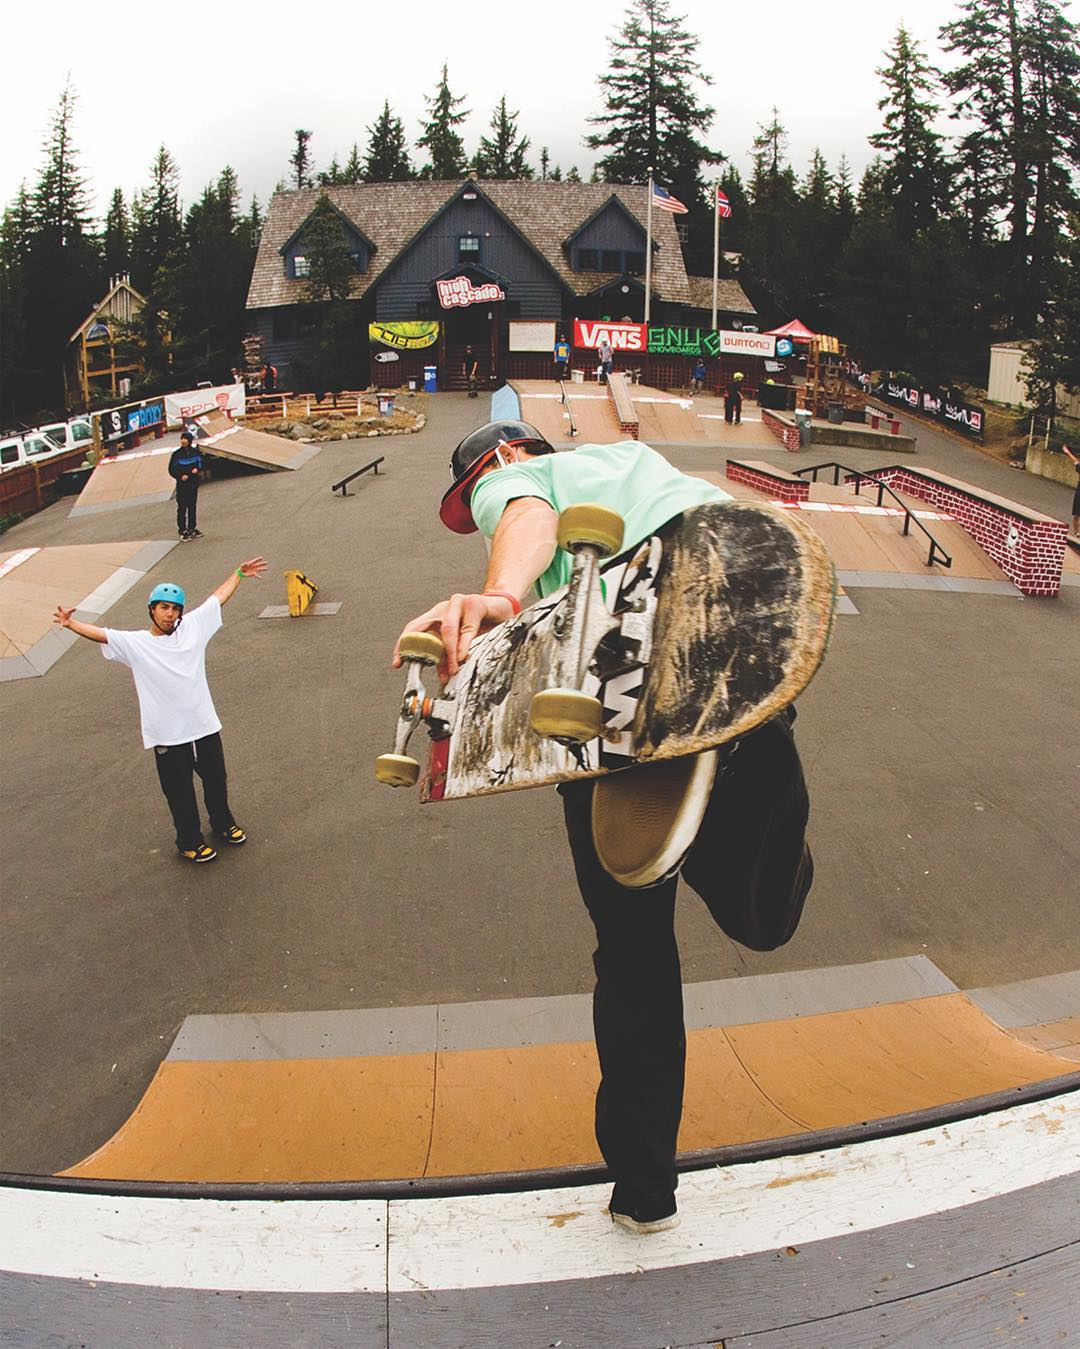 The days between now and skating the @highcascade #streetcourse with @sleepystevens are numbered!